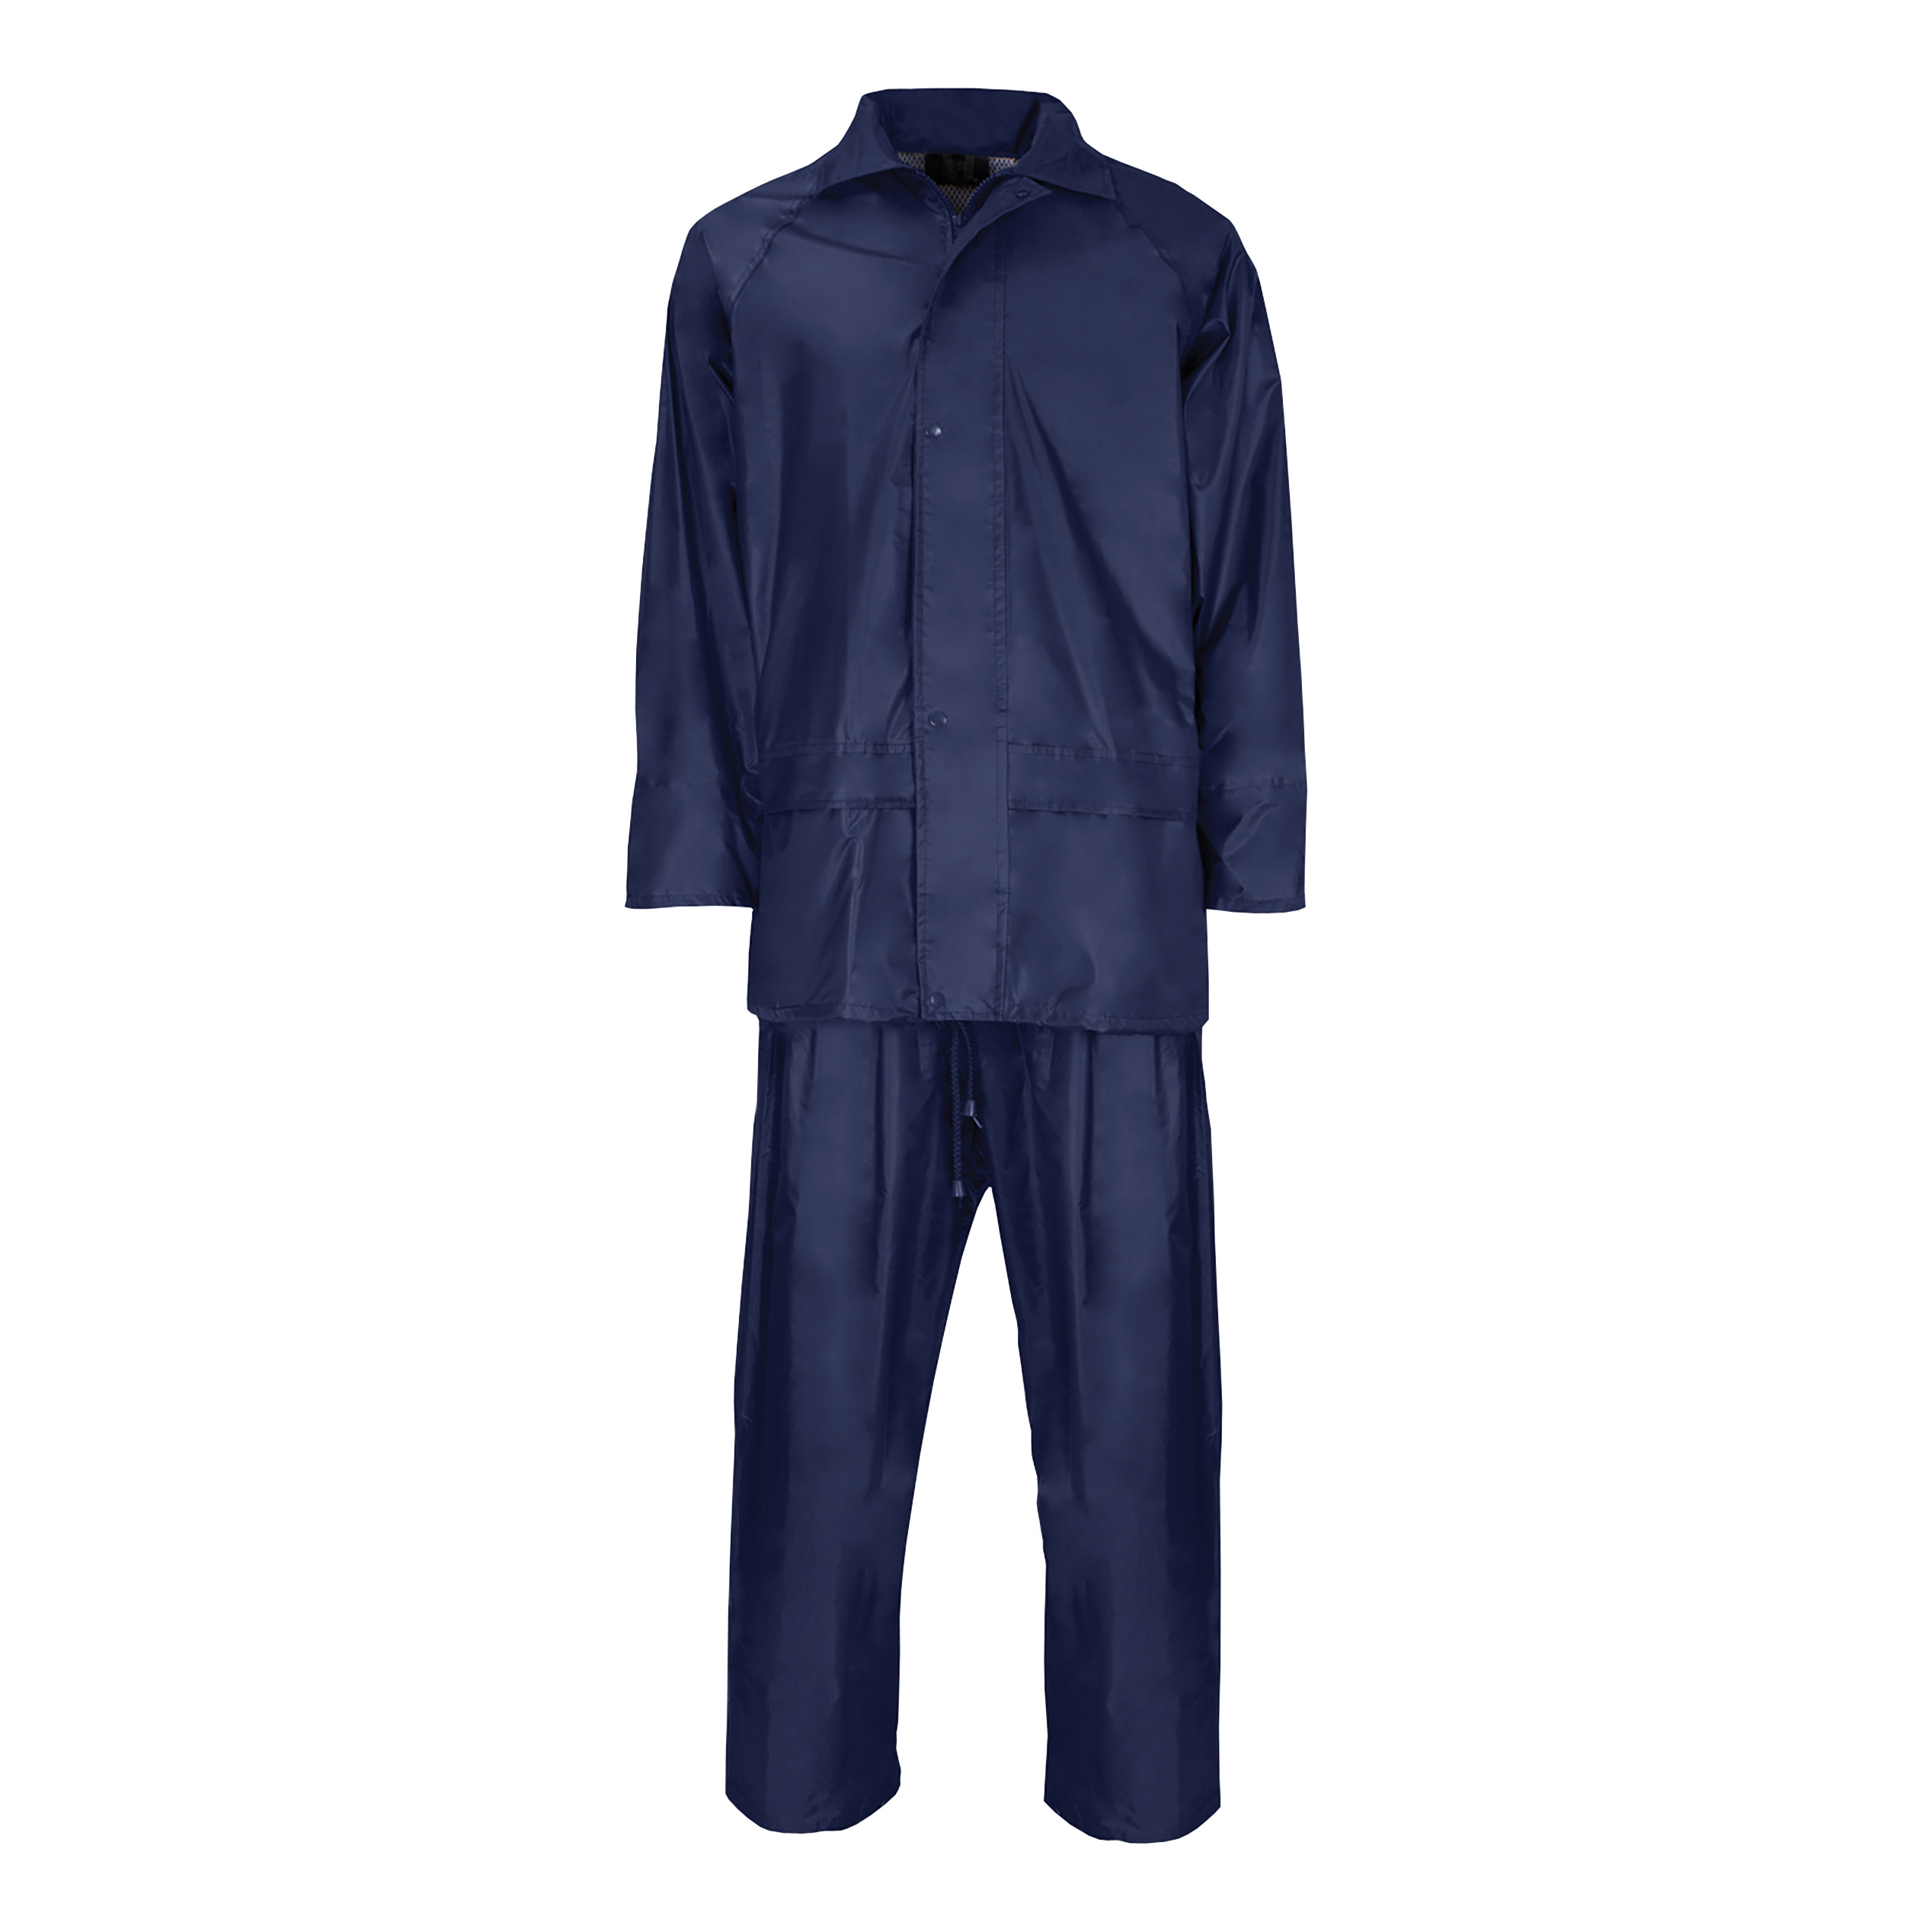 Rainsuit Polyester/PVC with Elasticated Waisted Trousers Large Navy *Approx 3 Day Leadtime*